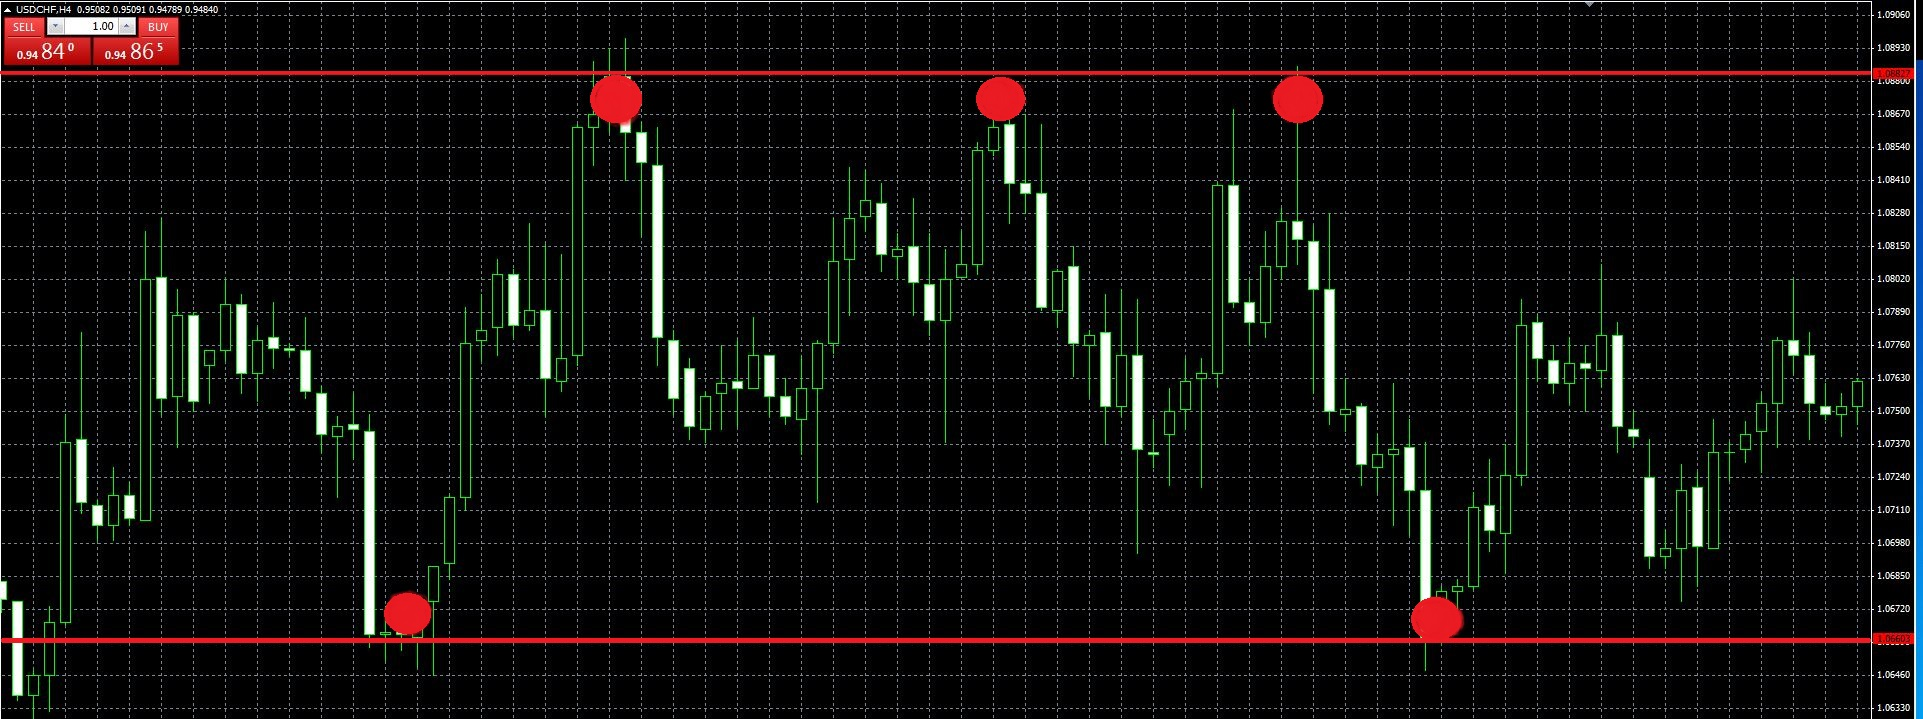 5 min binary option trading strategy